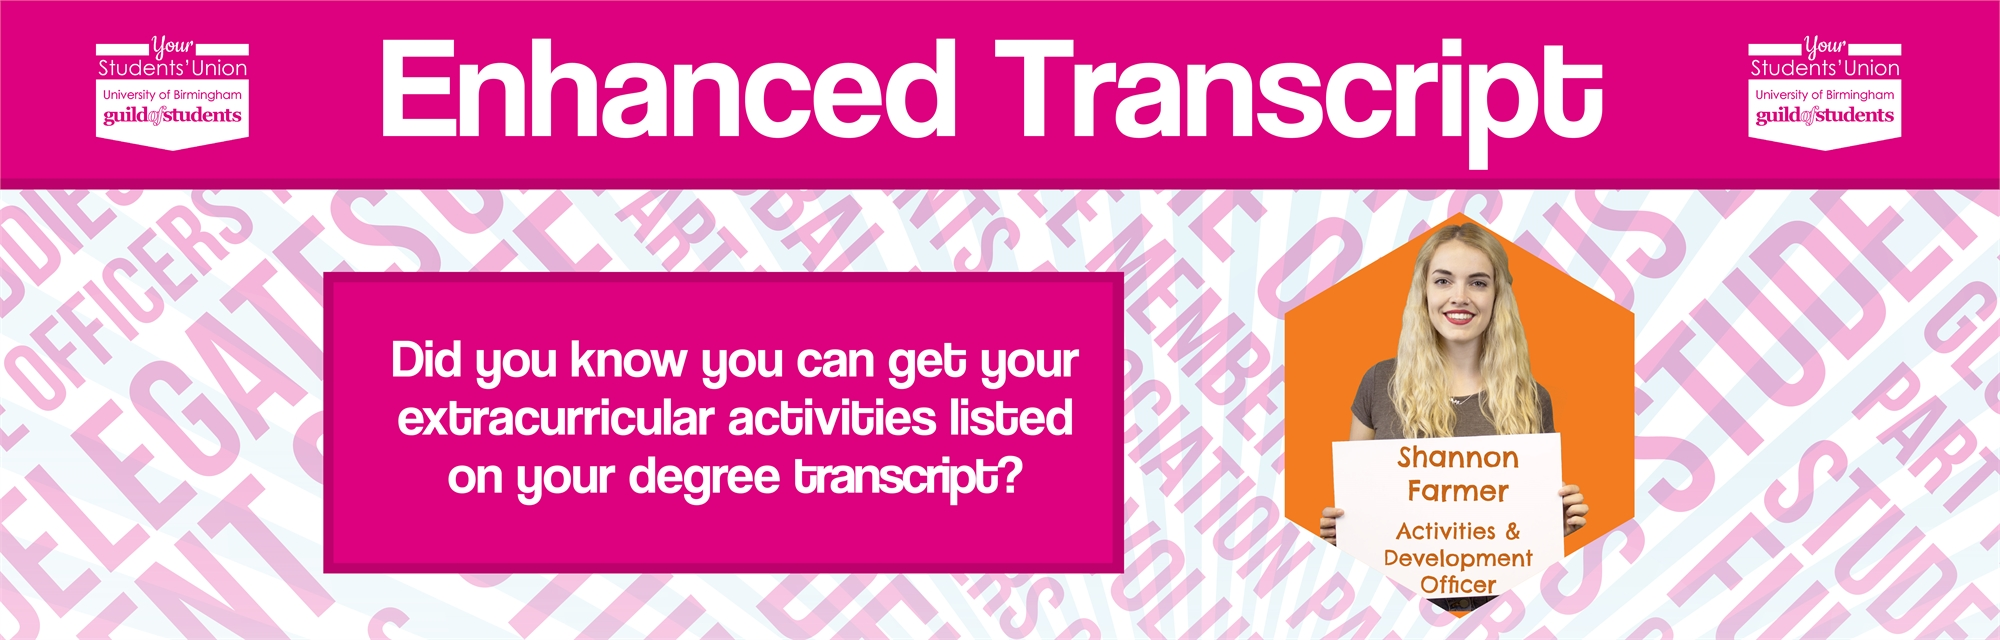 Did you know you can get extra curricular activities listed on your degree transcript? - www.guildof